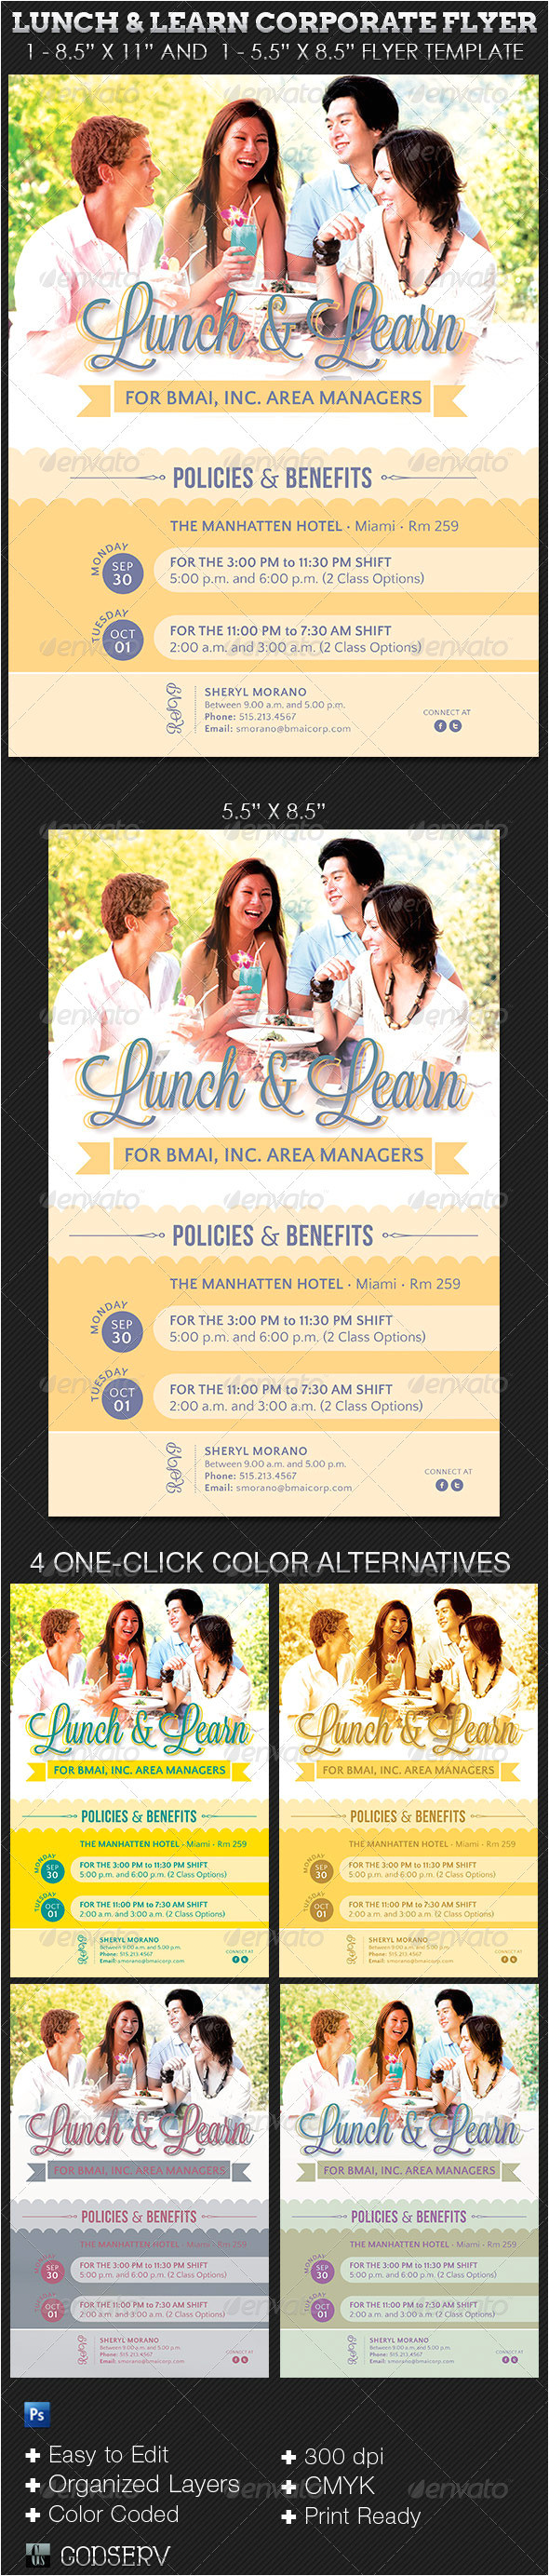 Lunch and Learn Flyer Template Lunch and Learn Corporate Flyer Template On Behance